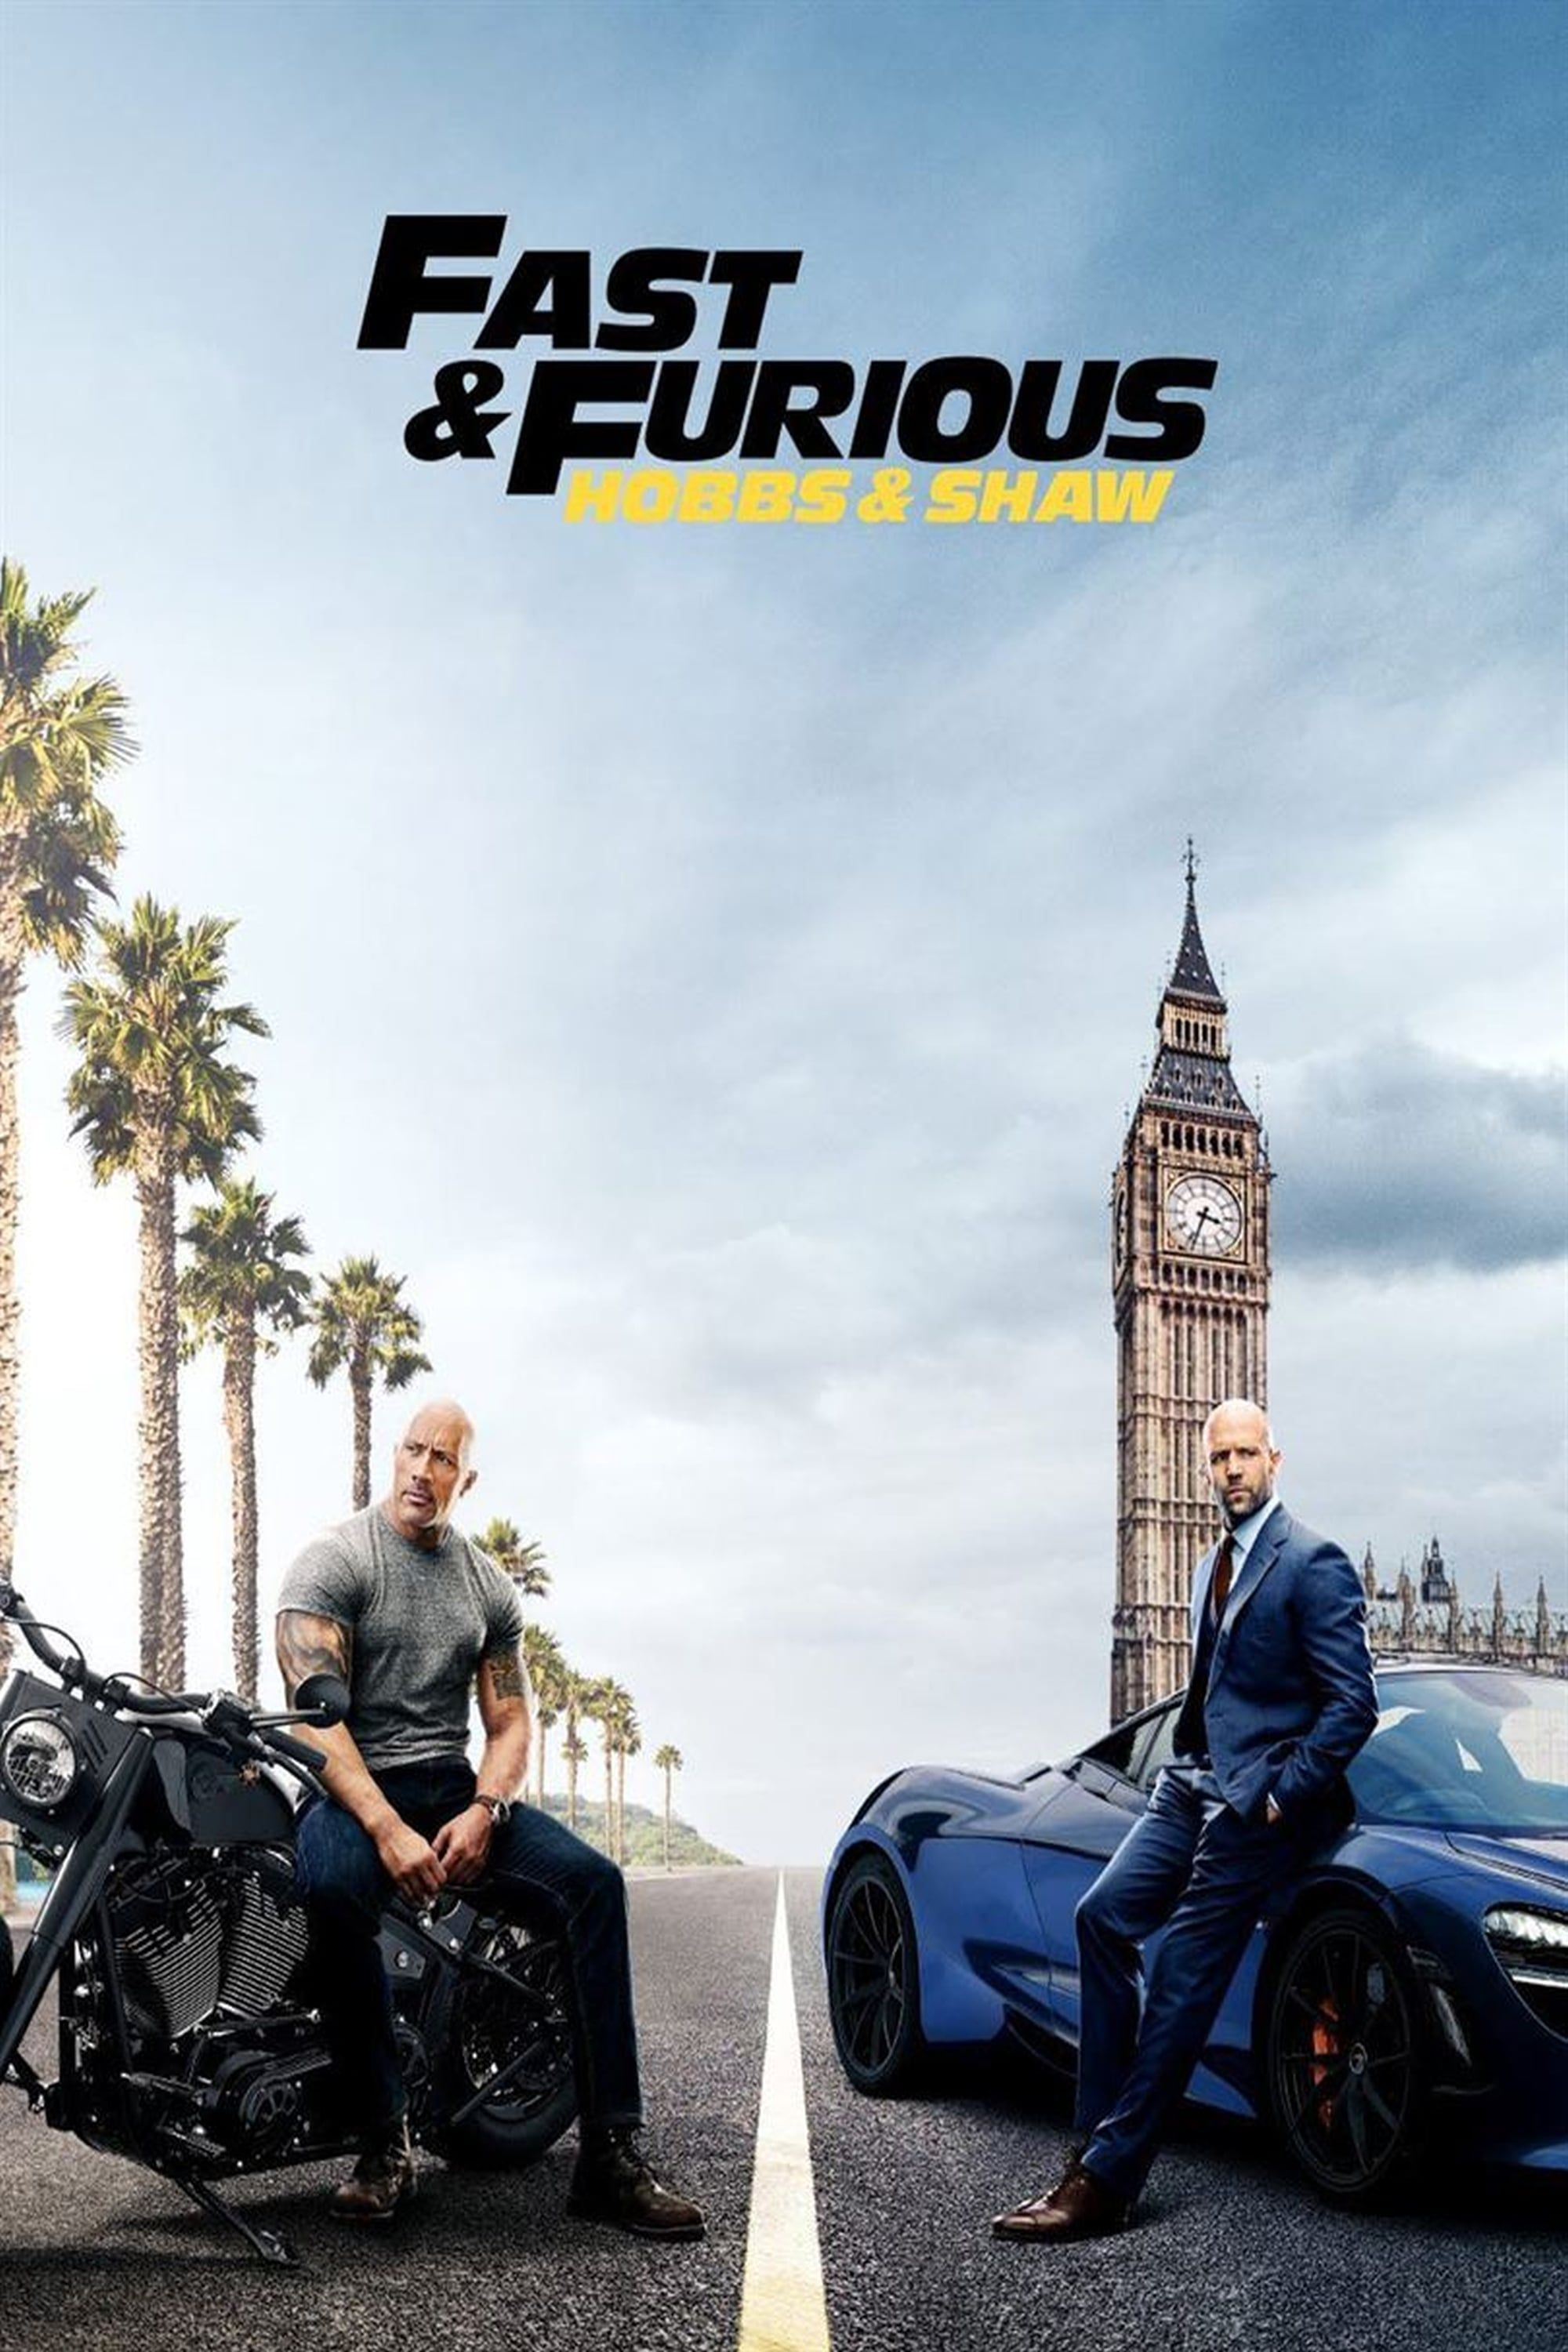 Pin On Fast Furious 2019 Hobbs And Shaw